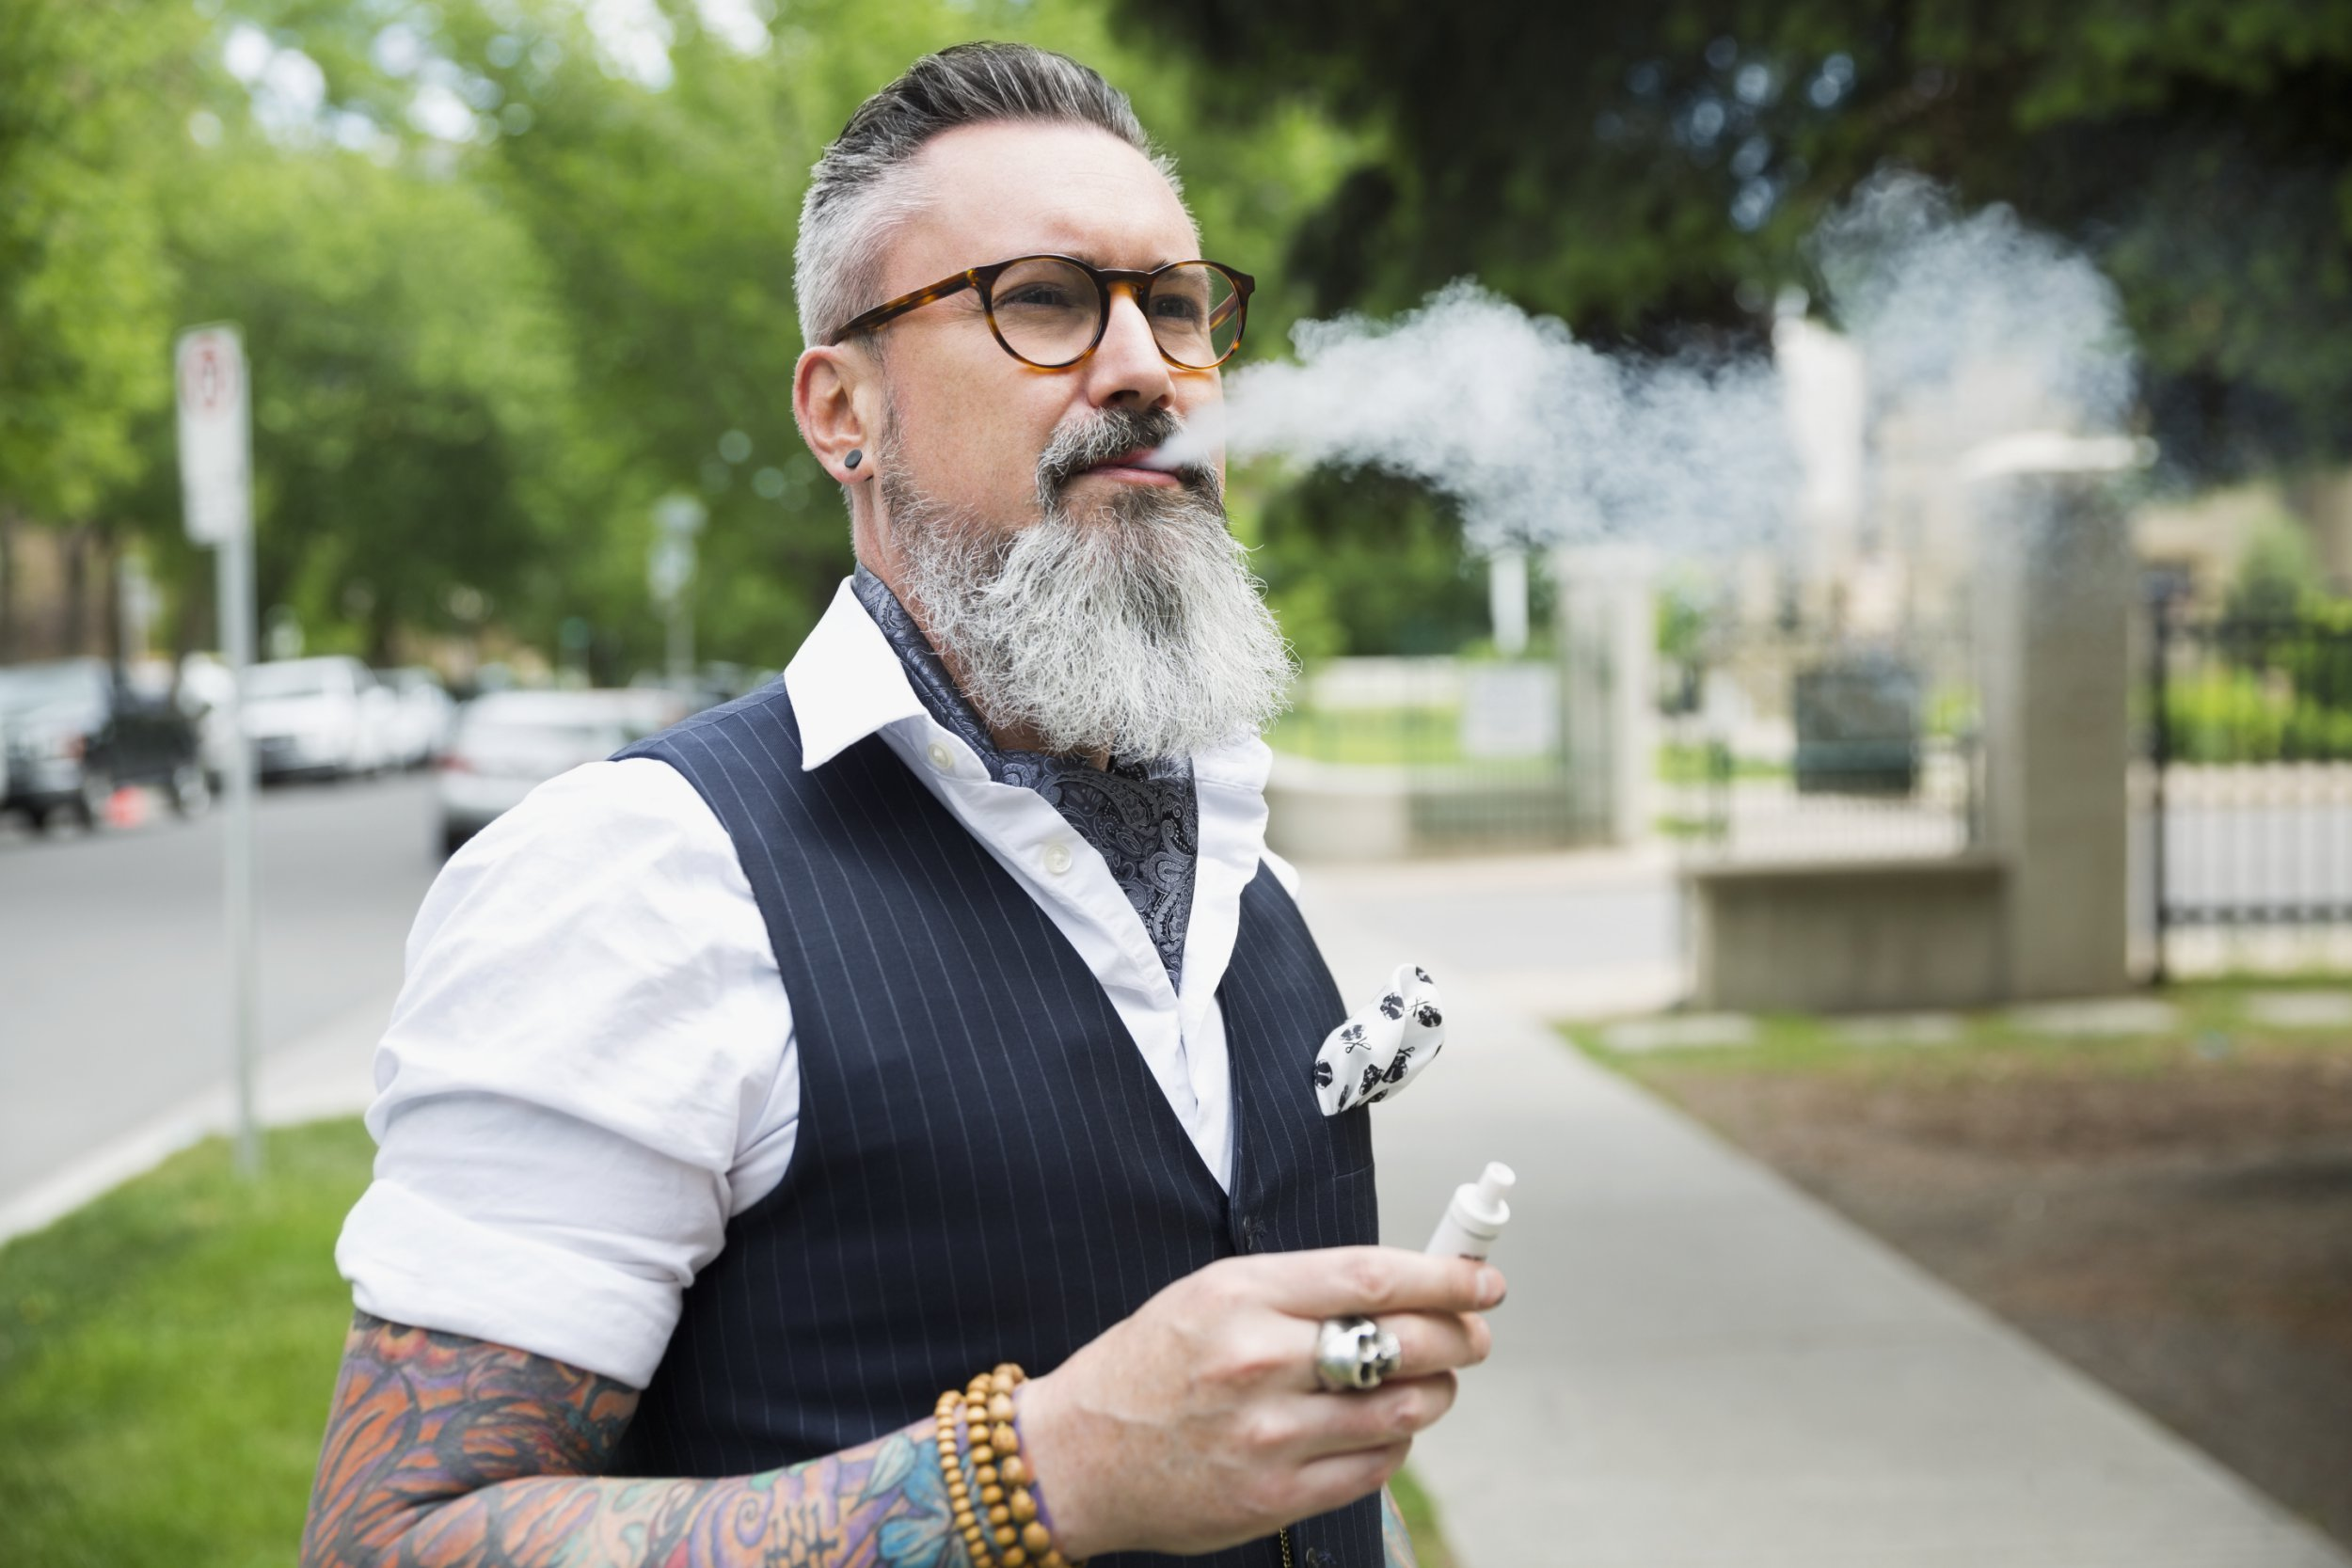 Vaping 101: How does vaping work? All the parts of an e-cigarette explained